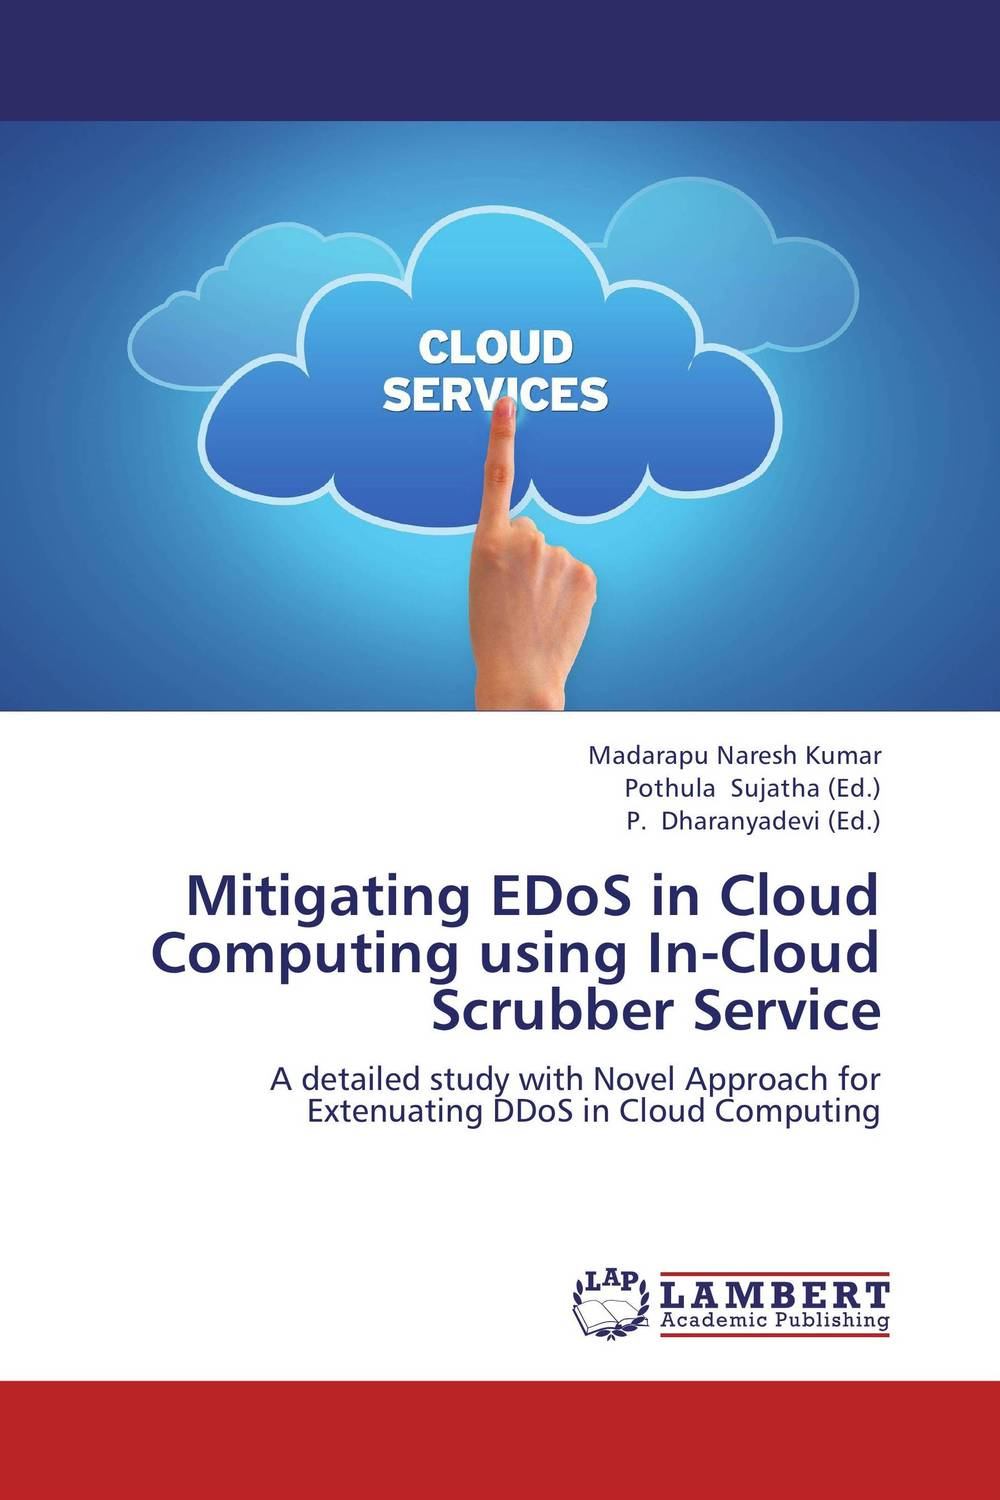 Mitigating EDoS in Cloud Computing using In-Cloud Scrubber Service evolution towards cloud